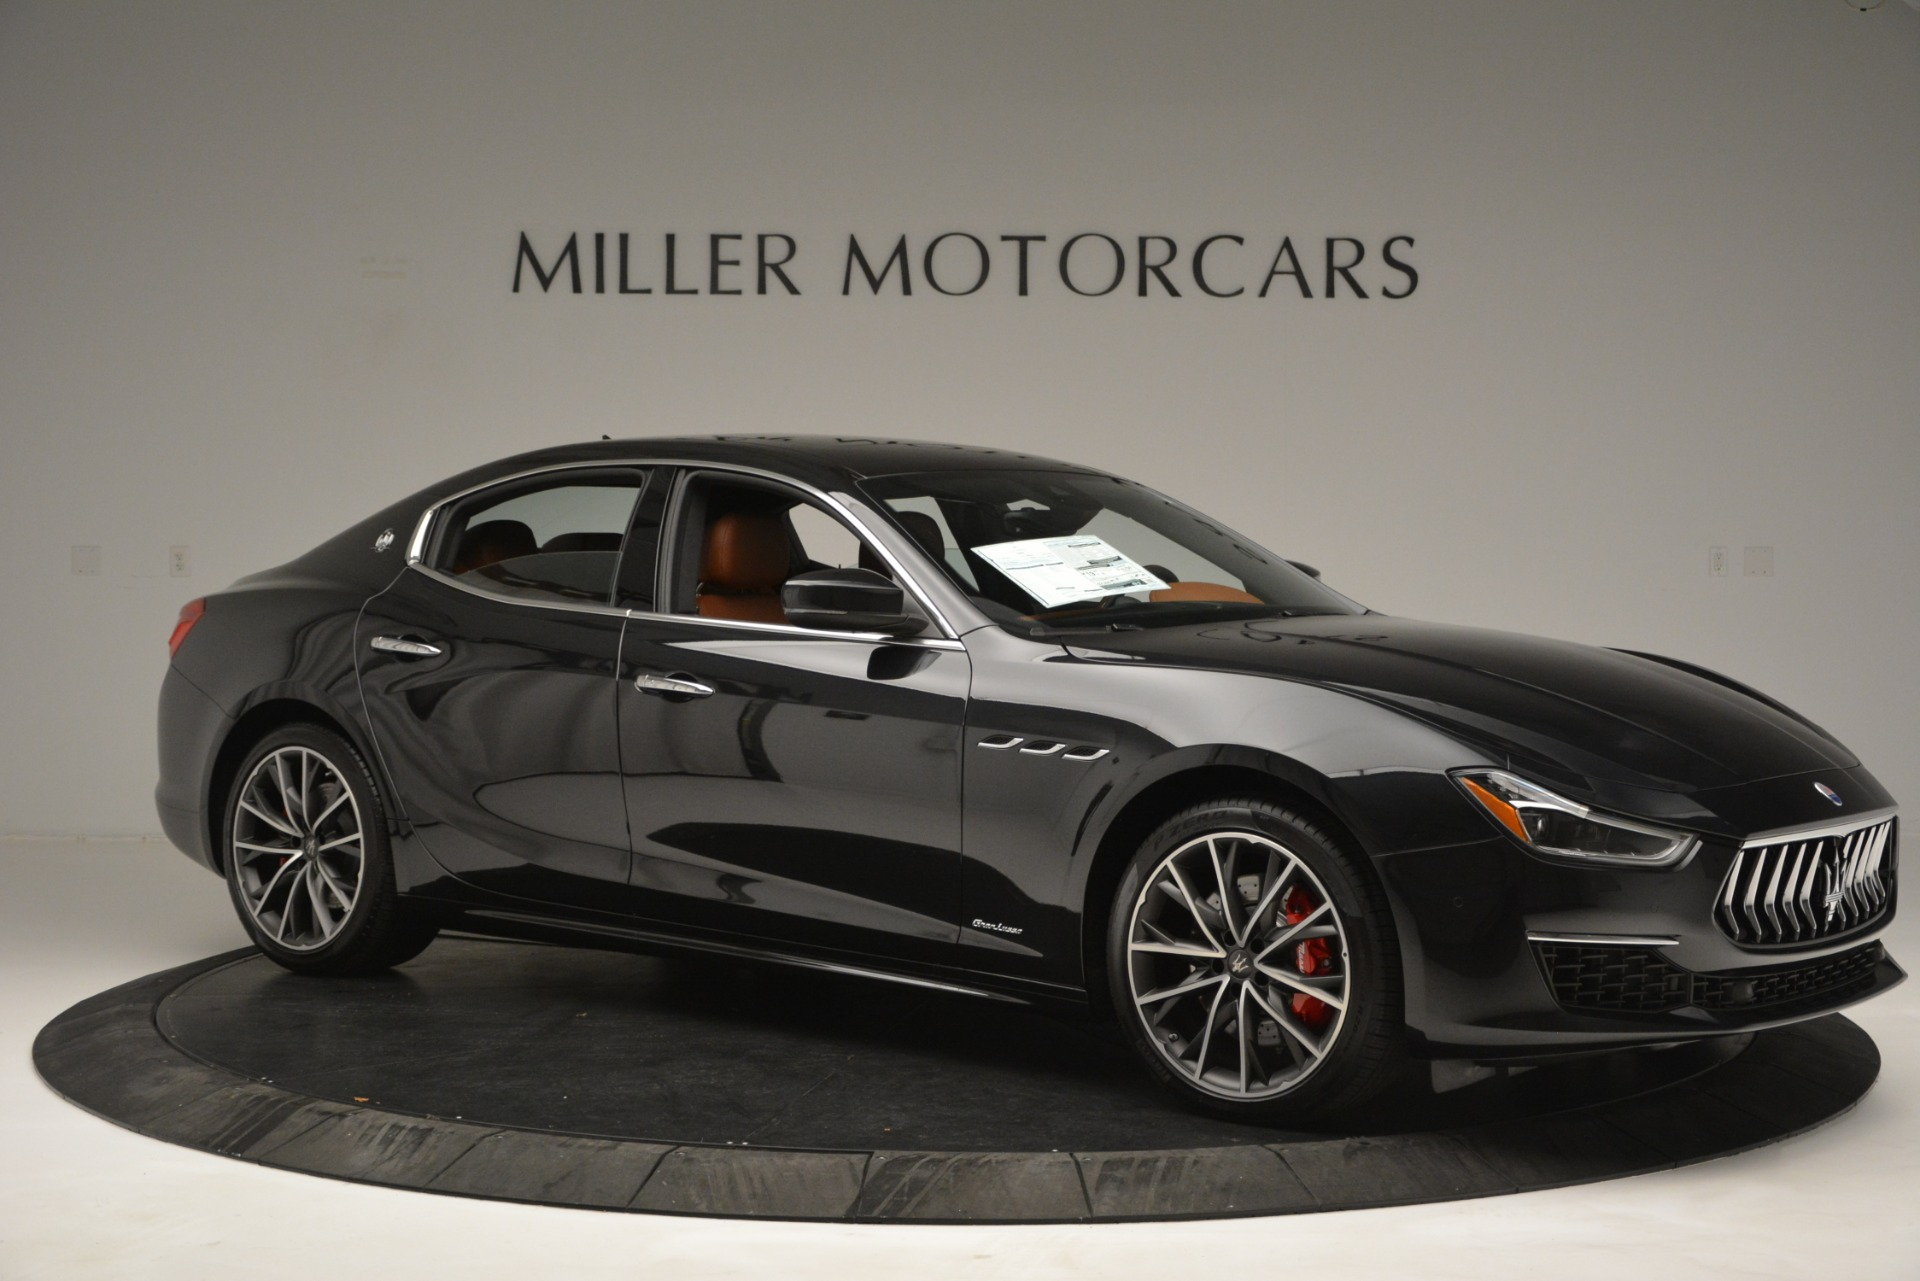 New 2019 Maserati Ghibli S Q4 GranLusso For Sale In Westport, CT 2590_p10